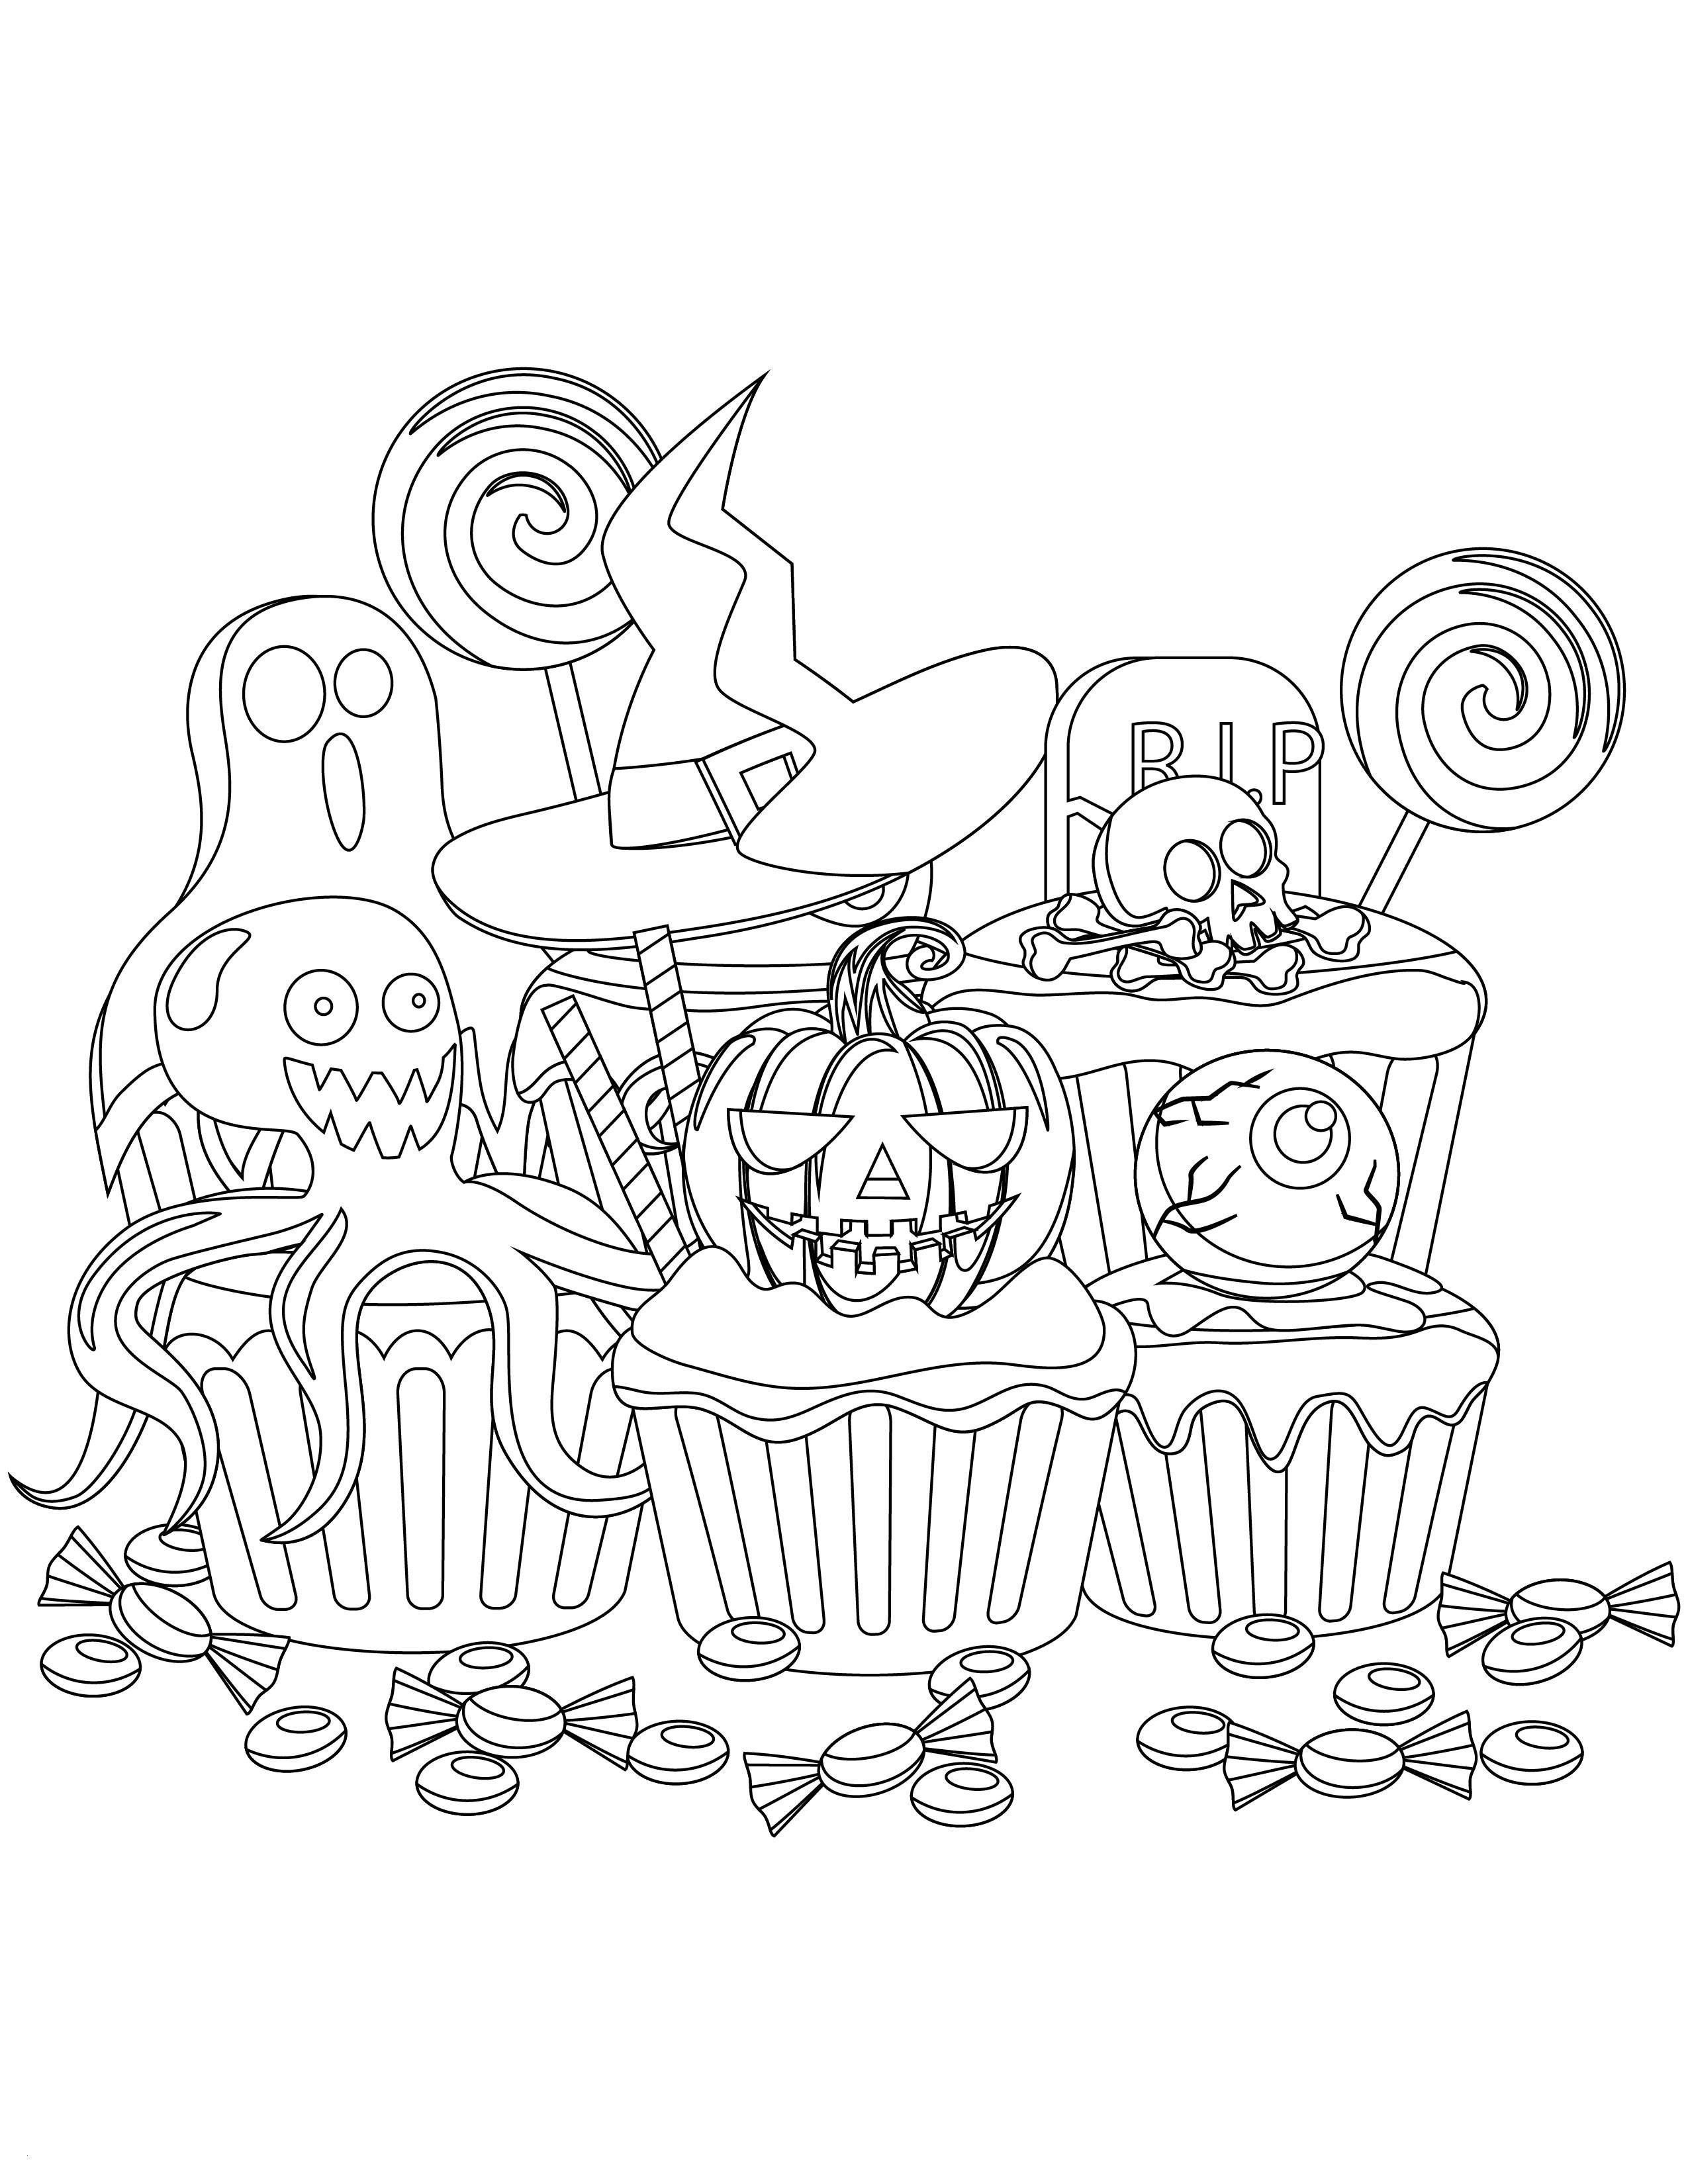 20 Minion Printable Coloring Pages Download Coloring Sheets